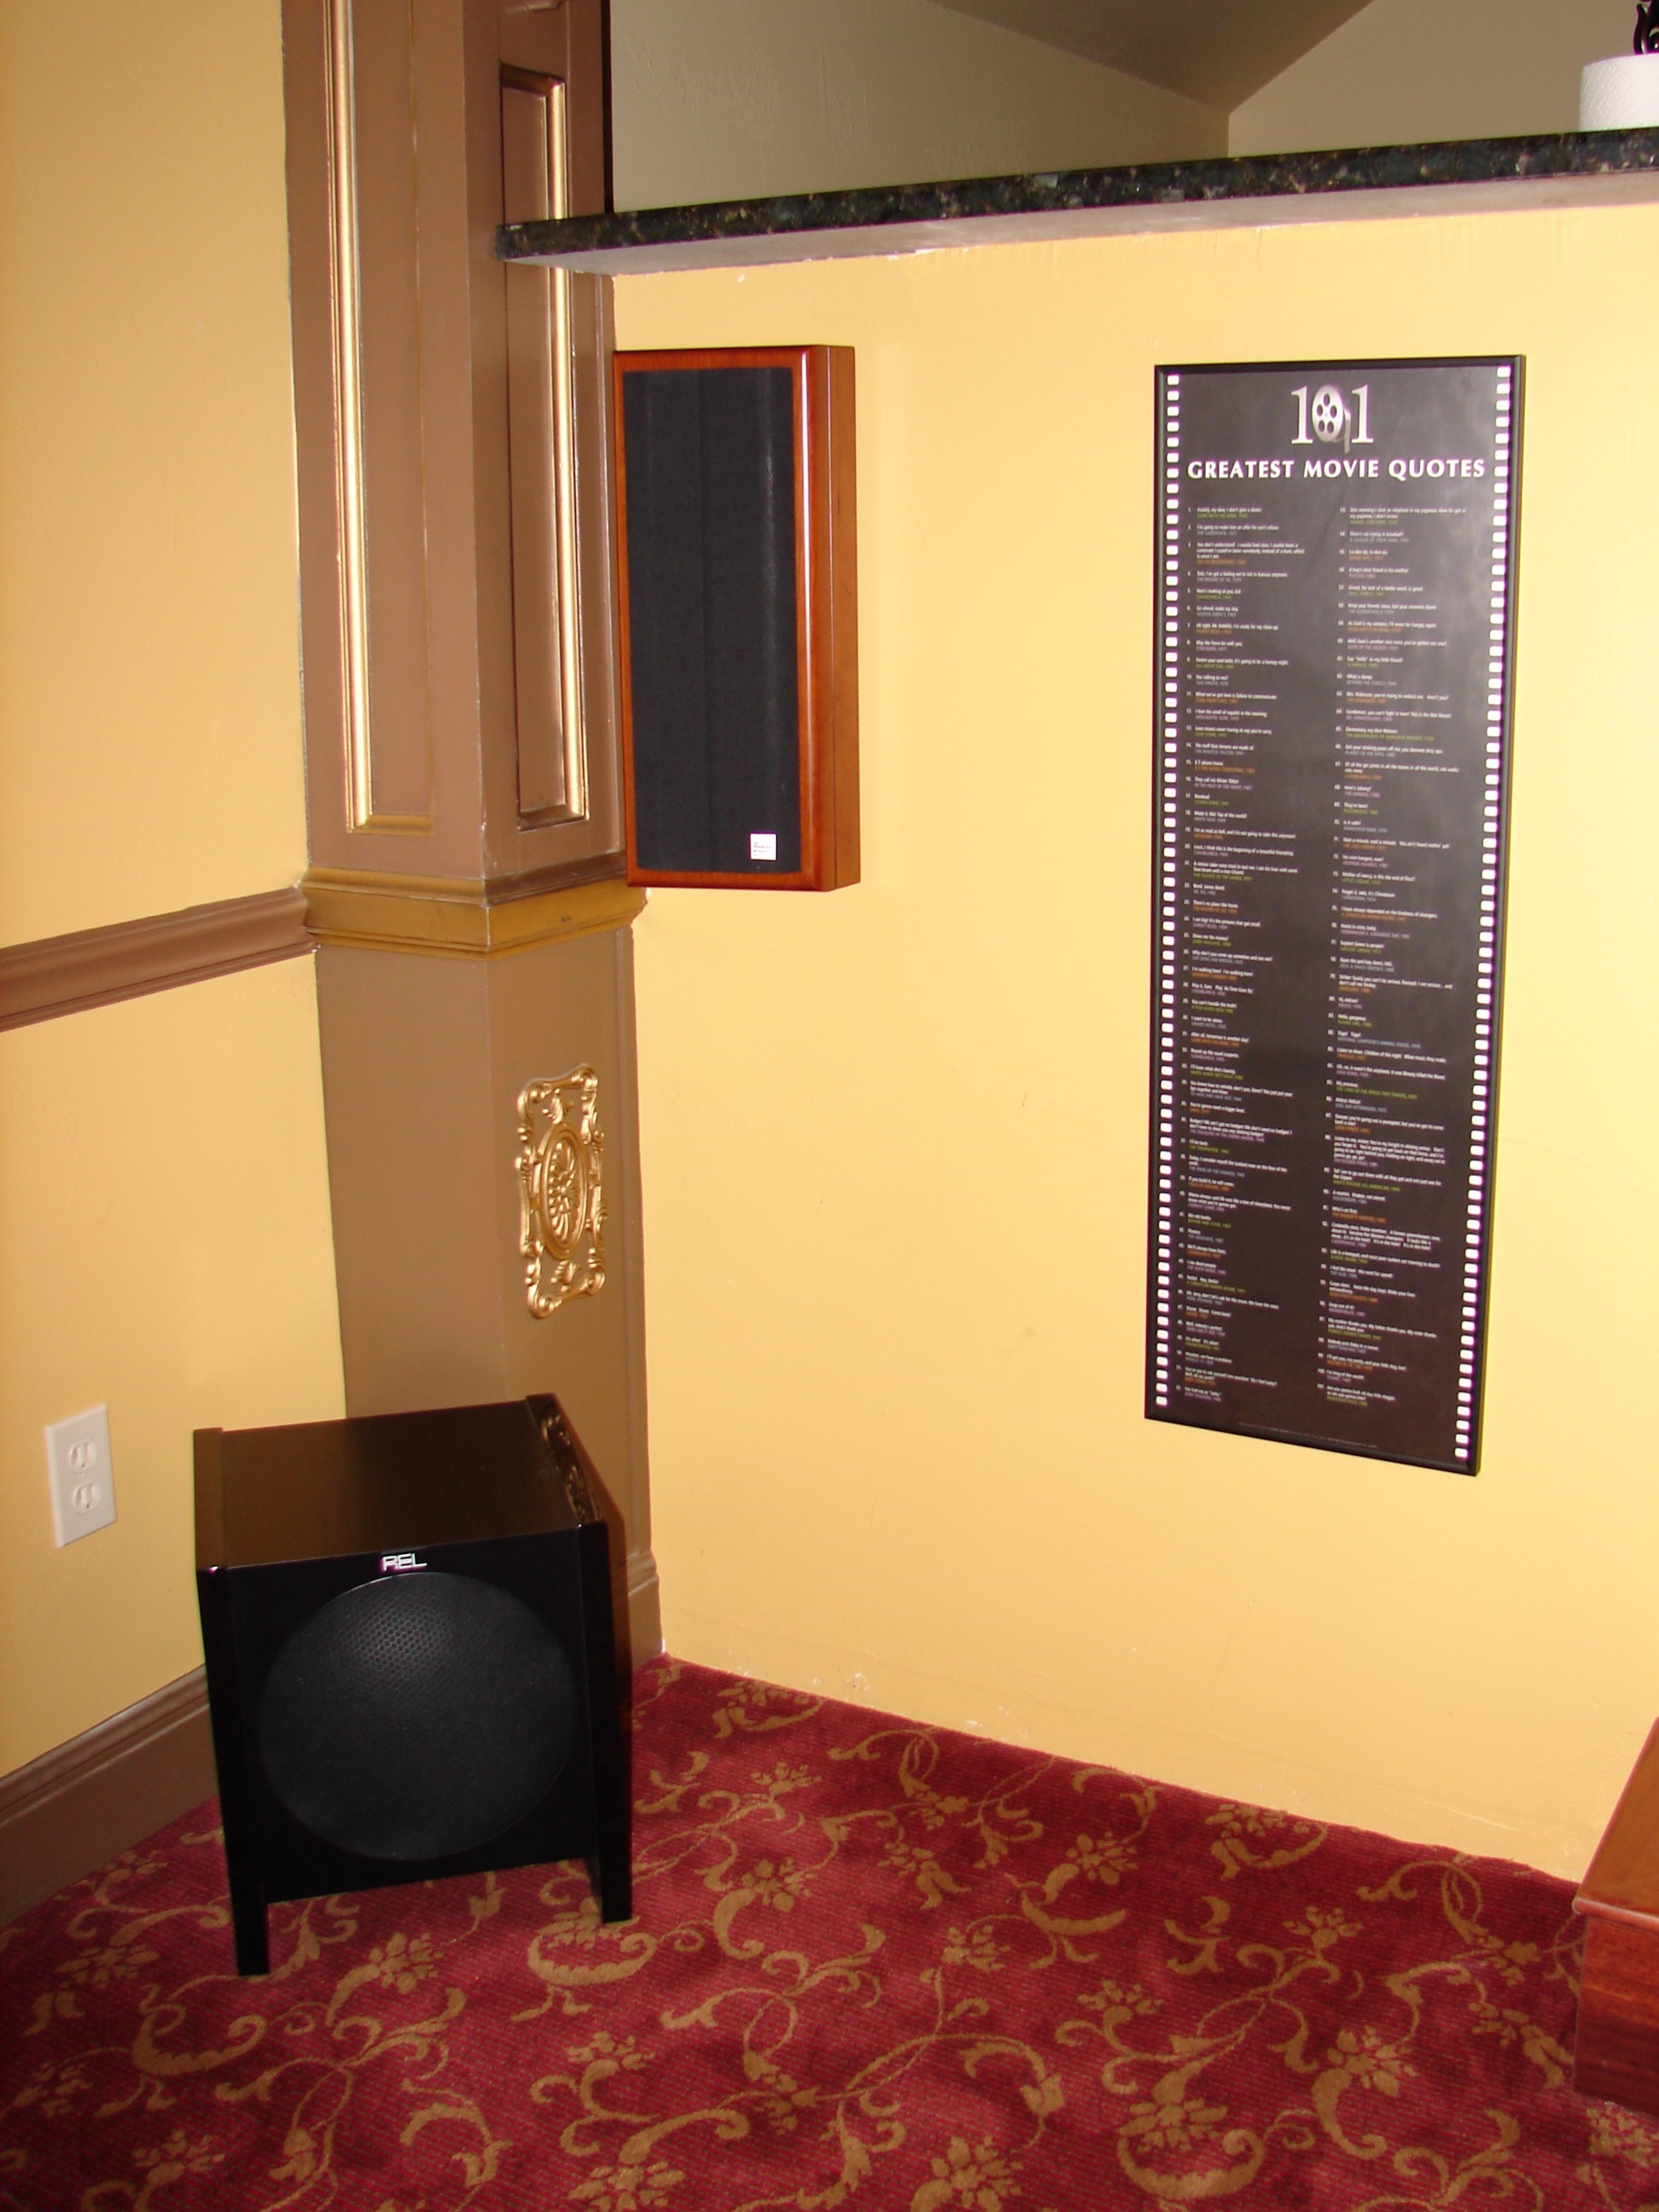 Dripping Springs Theater (2007)